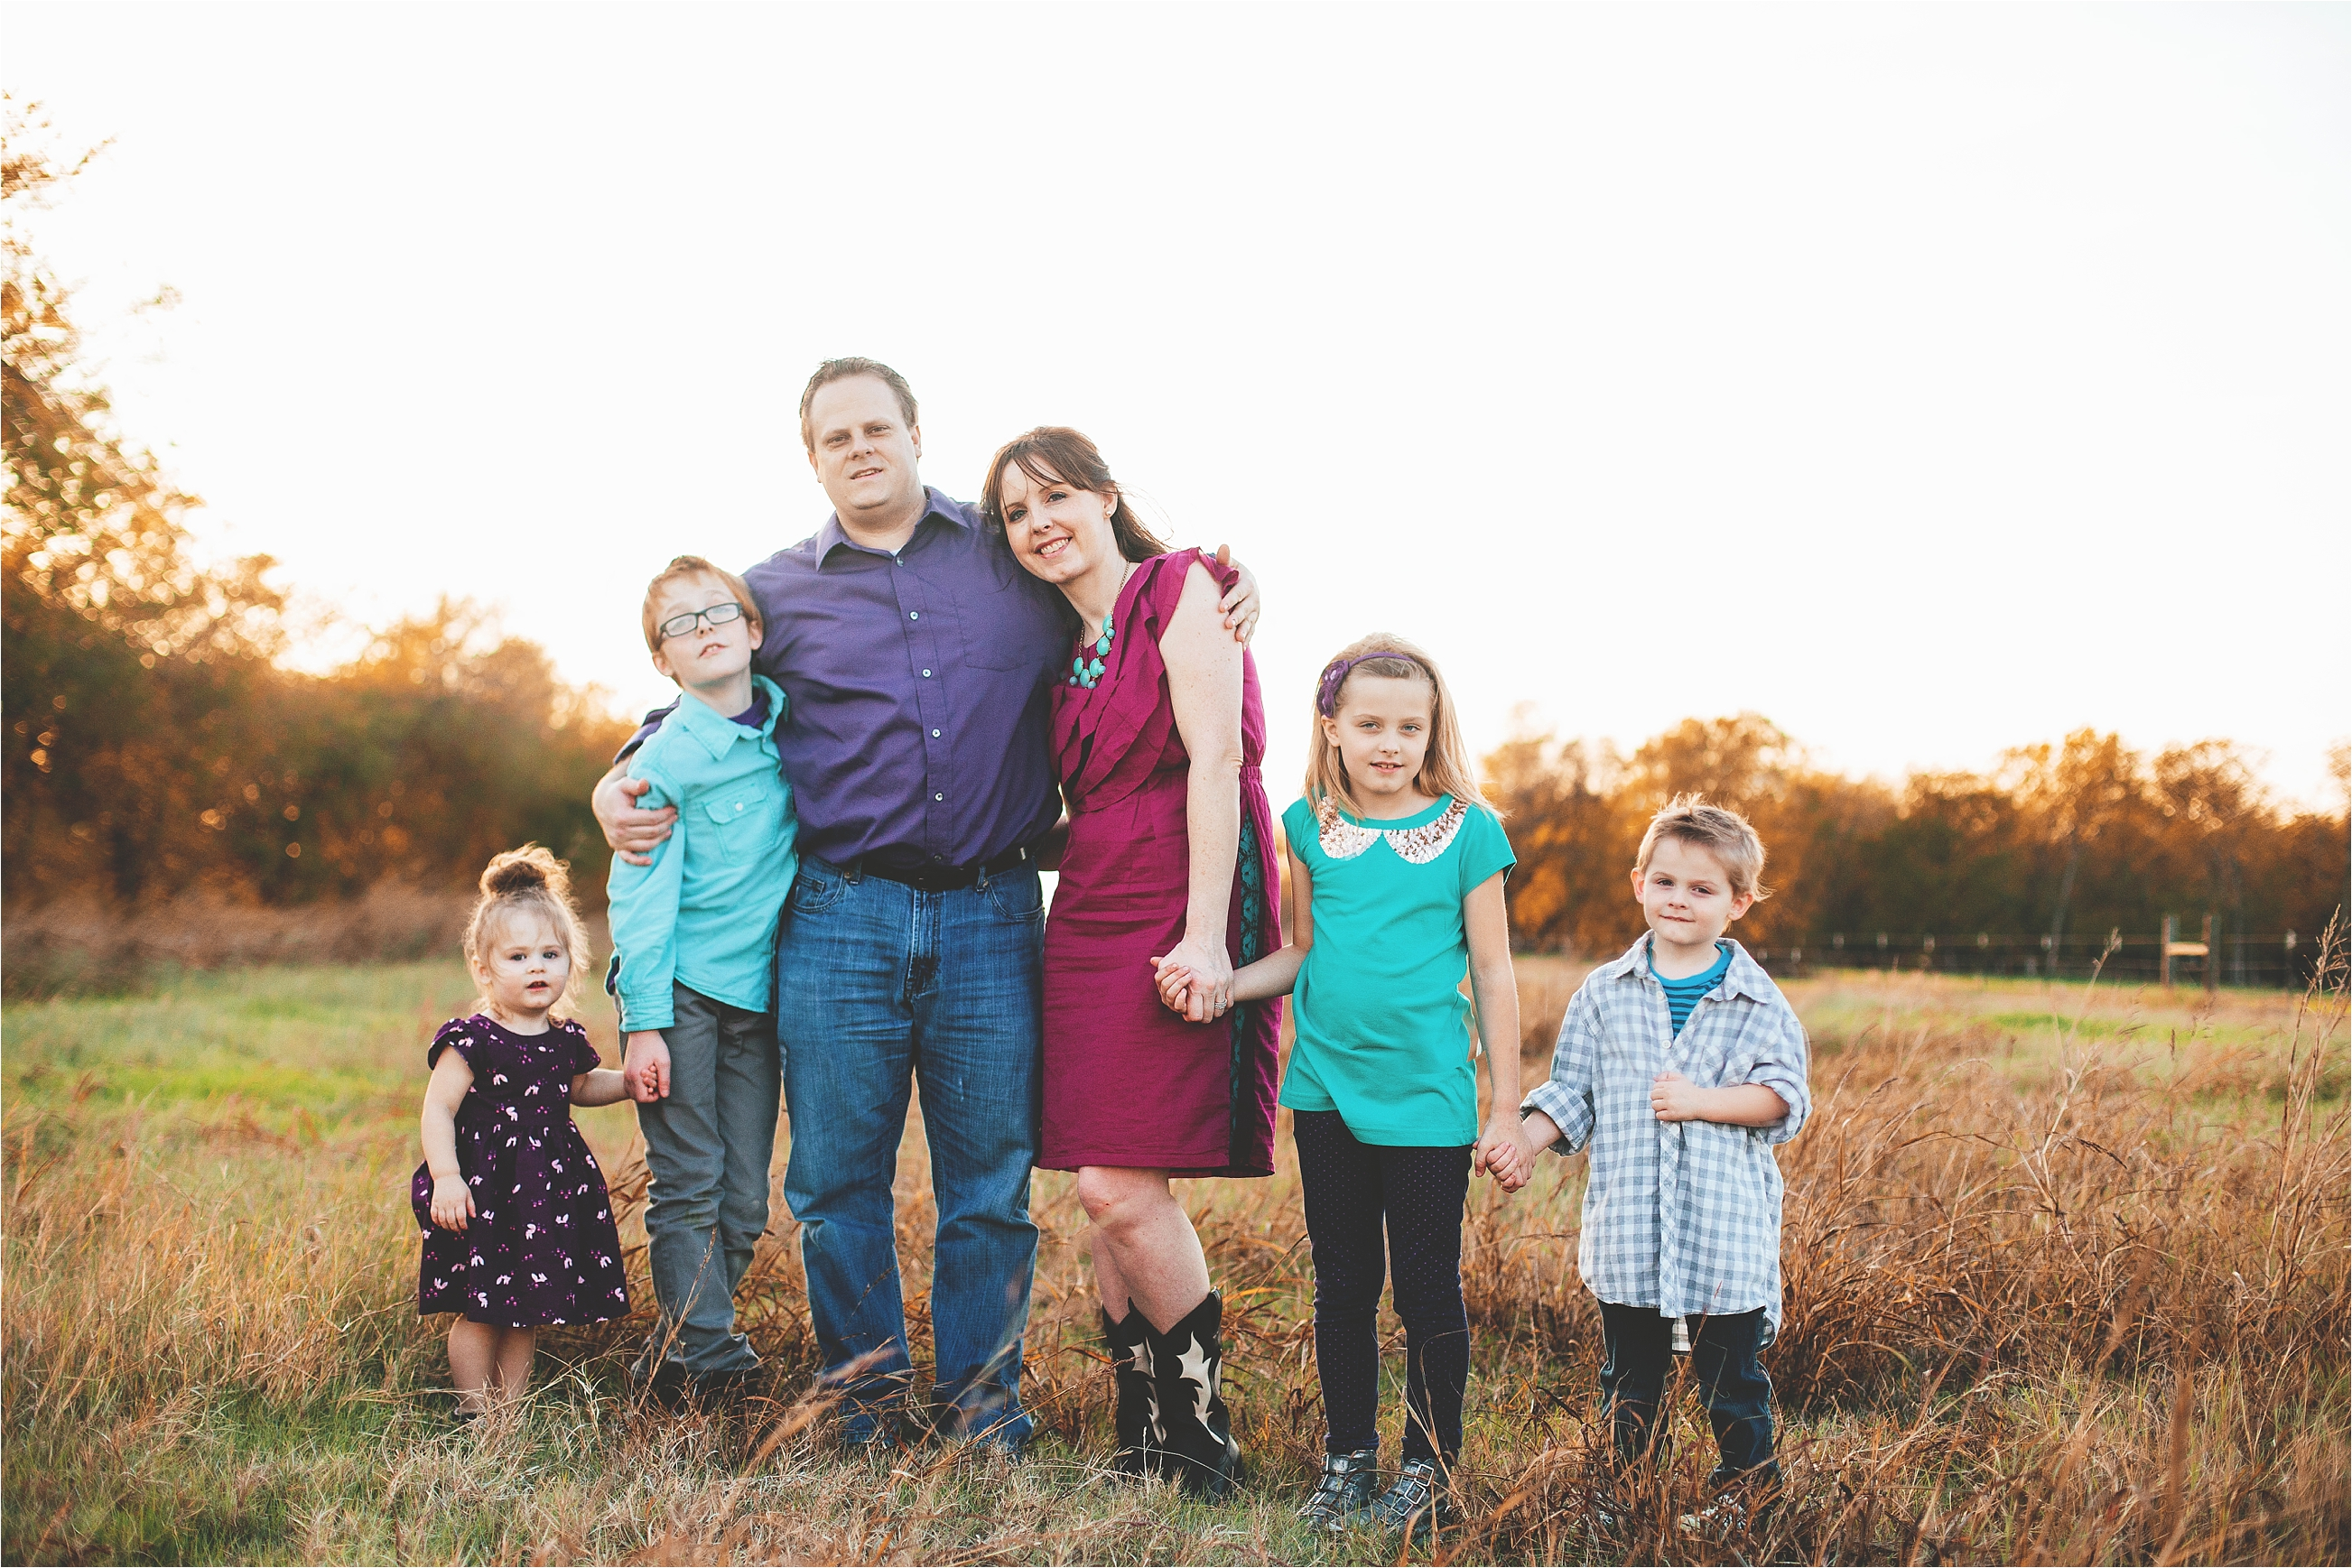 North-Texas-Family-Photographer-Servicing-Frisco-Plano-Denton-and-Mckinney-Texas-Lifestyle-Family-Photography-by-Rachel-Meagan-Photography04.jpg